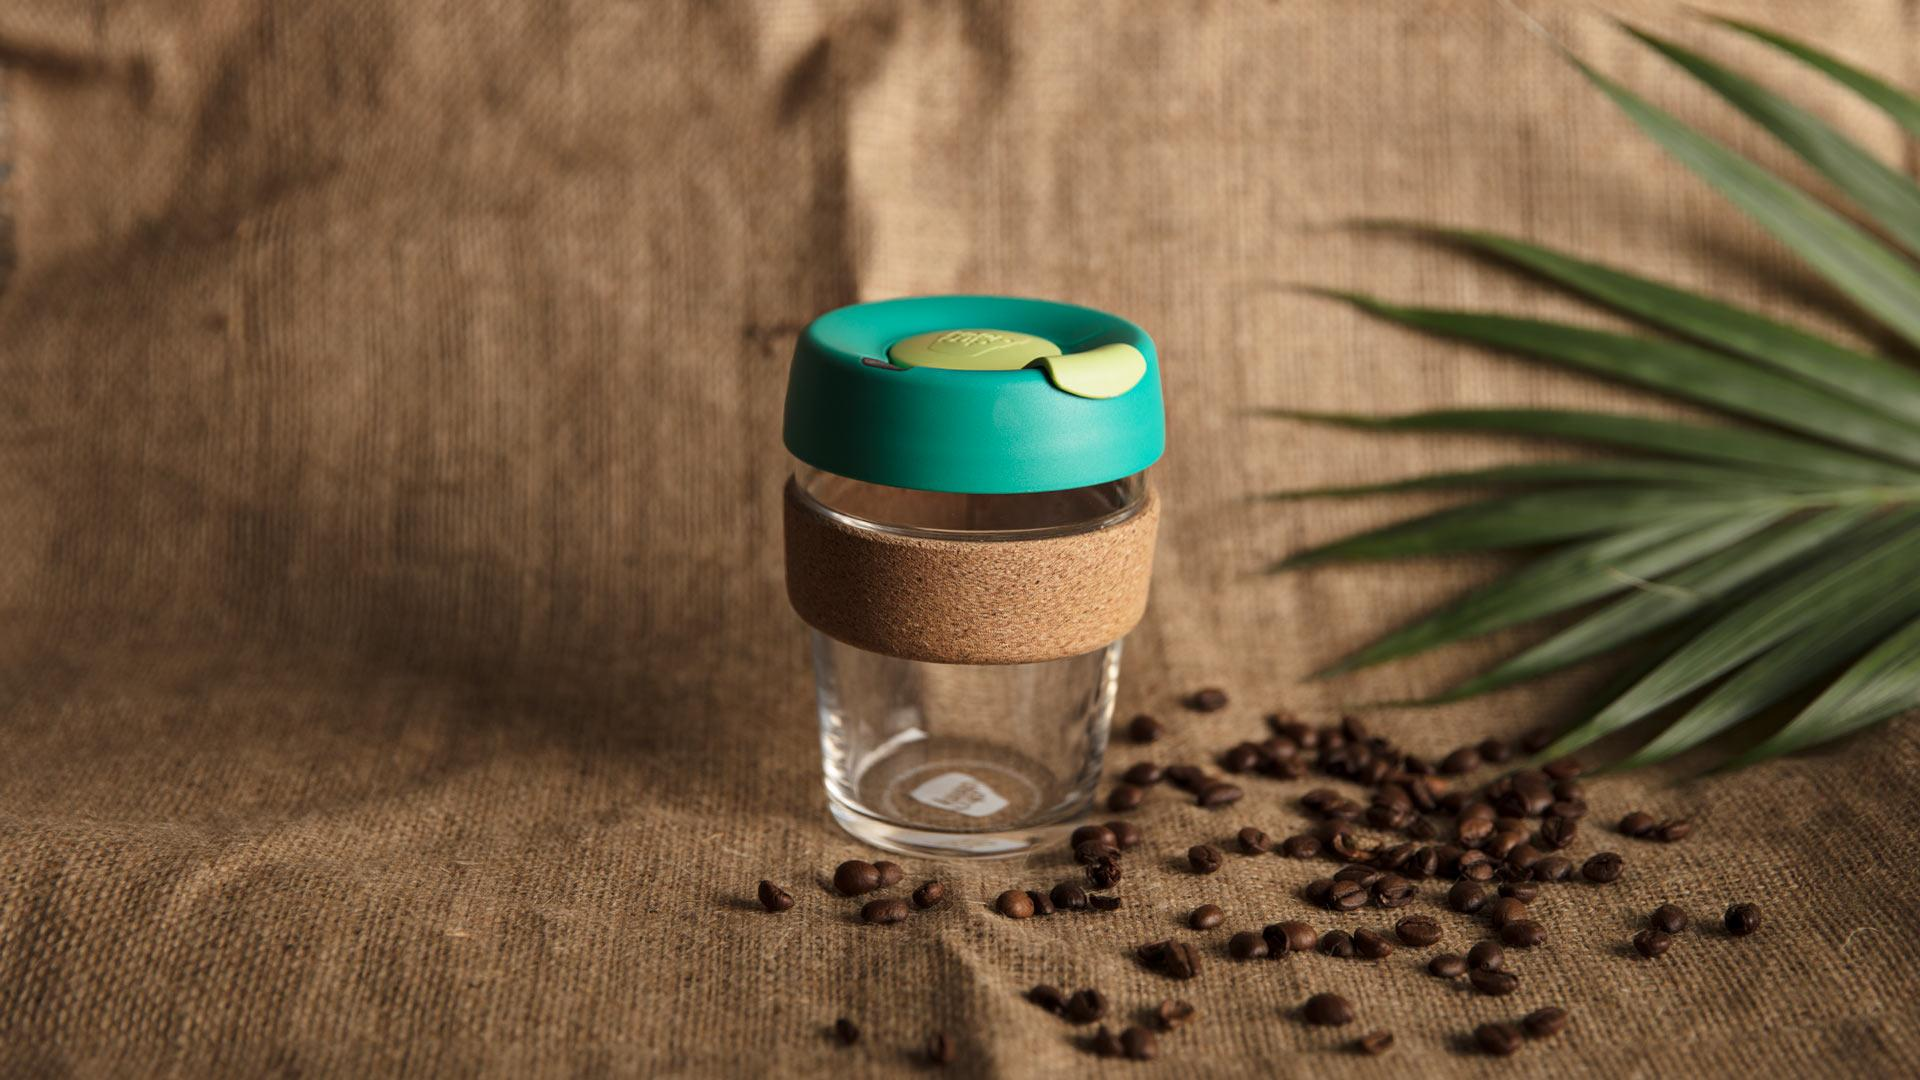 KeepCup's cork range in turbine